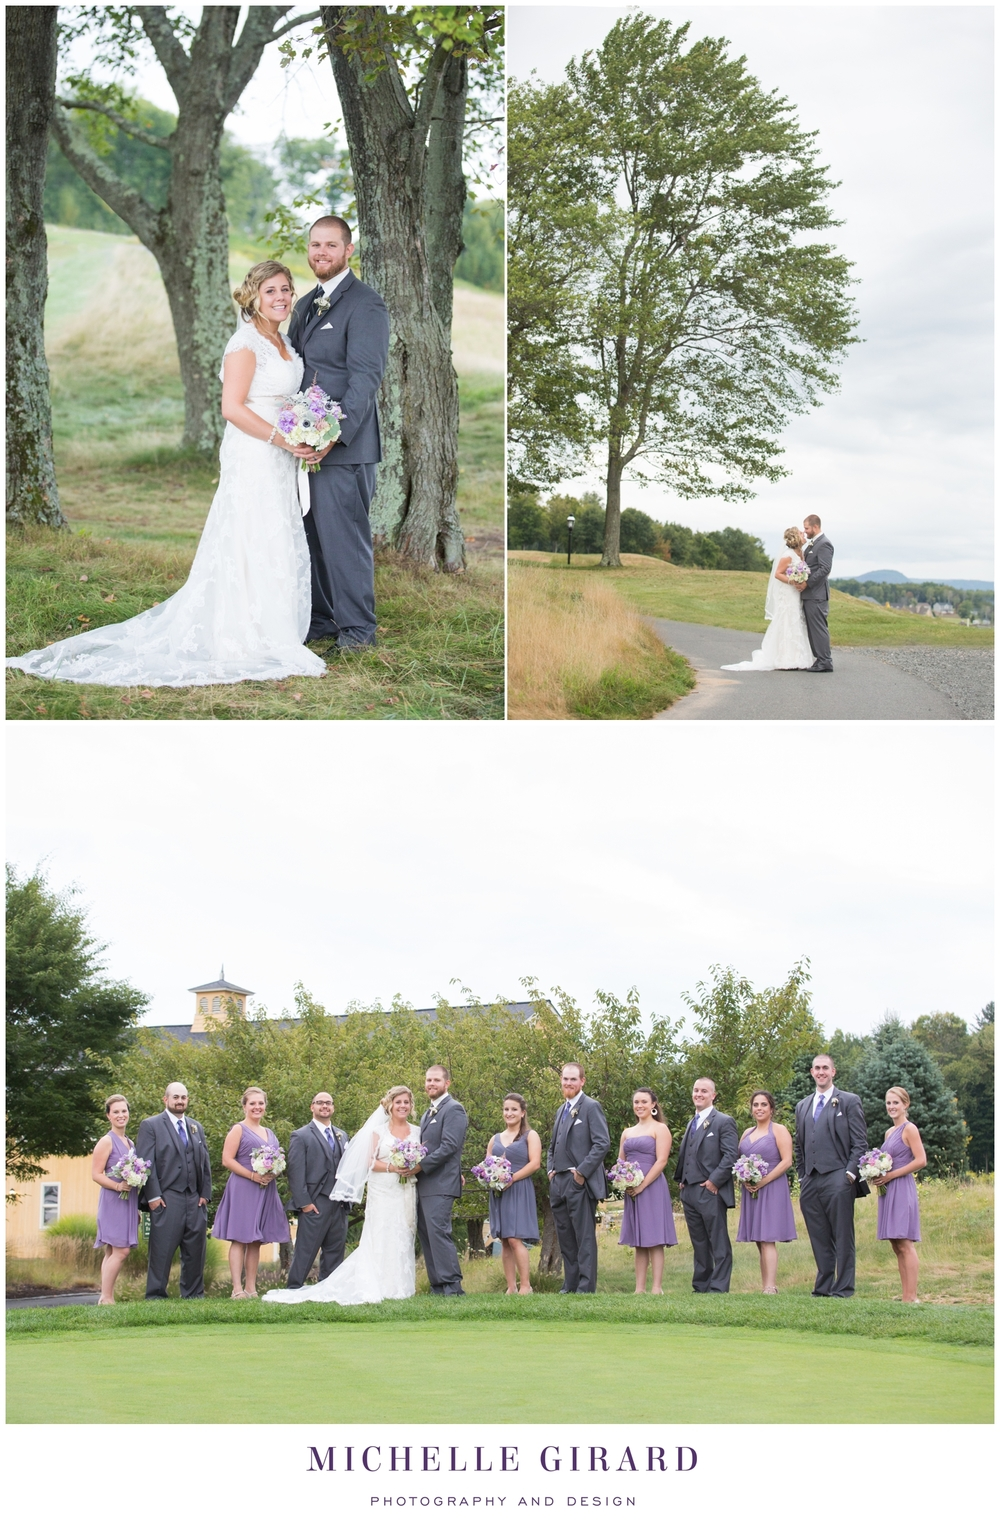 SeptemberWedding_TheRanchSouthwickMA_MichelleGirardPhotography1.jpg